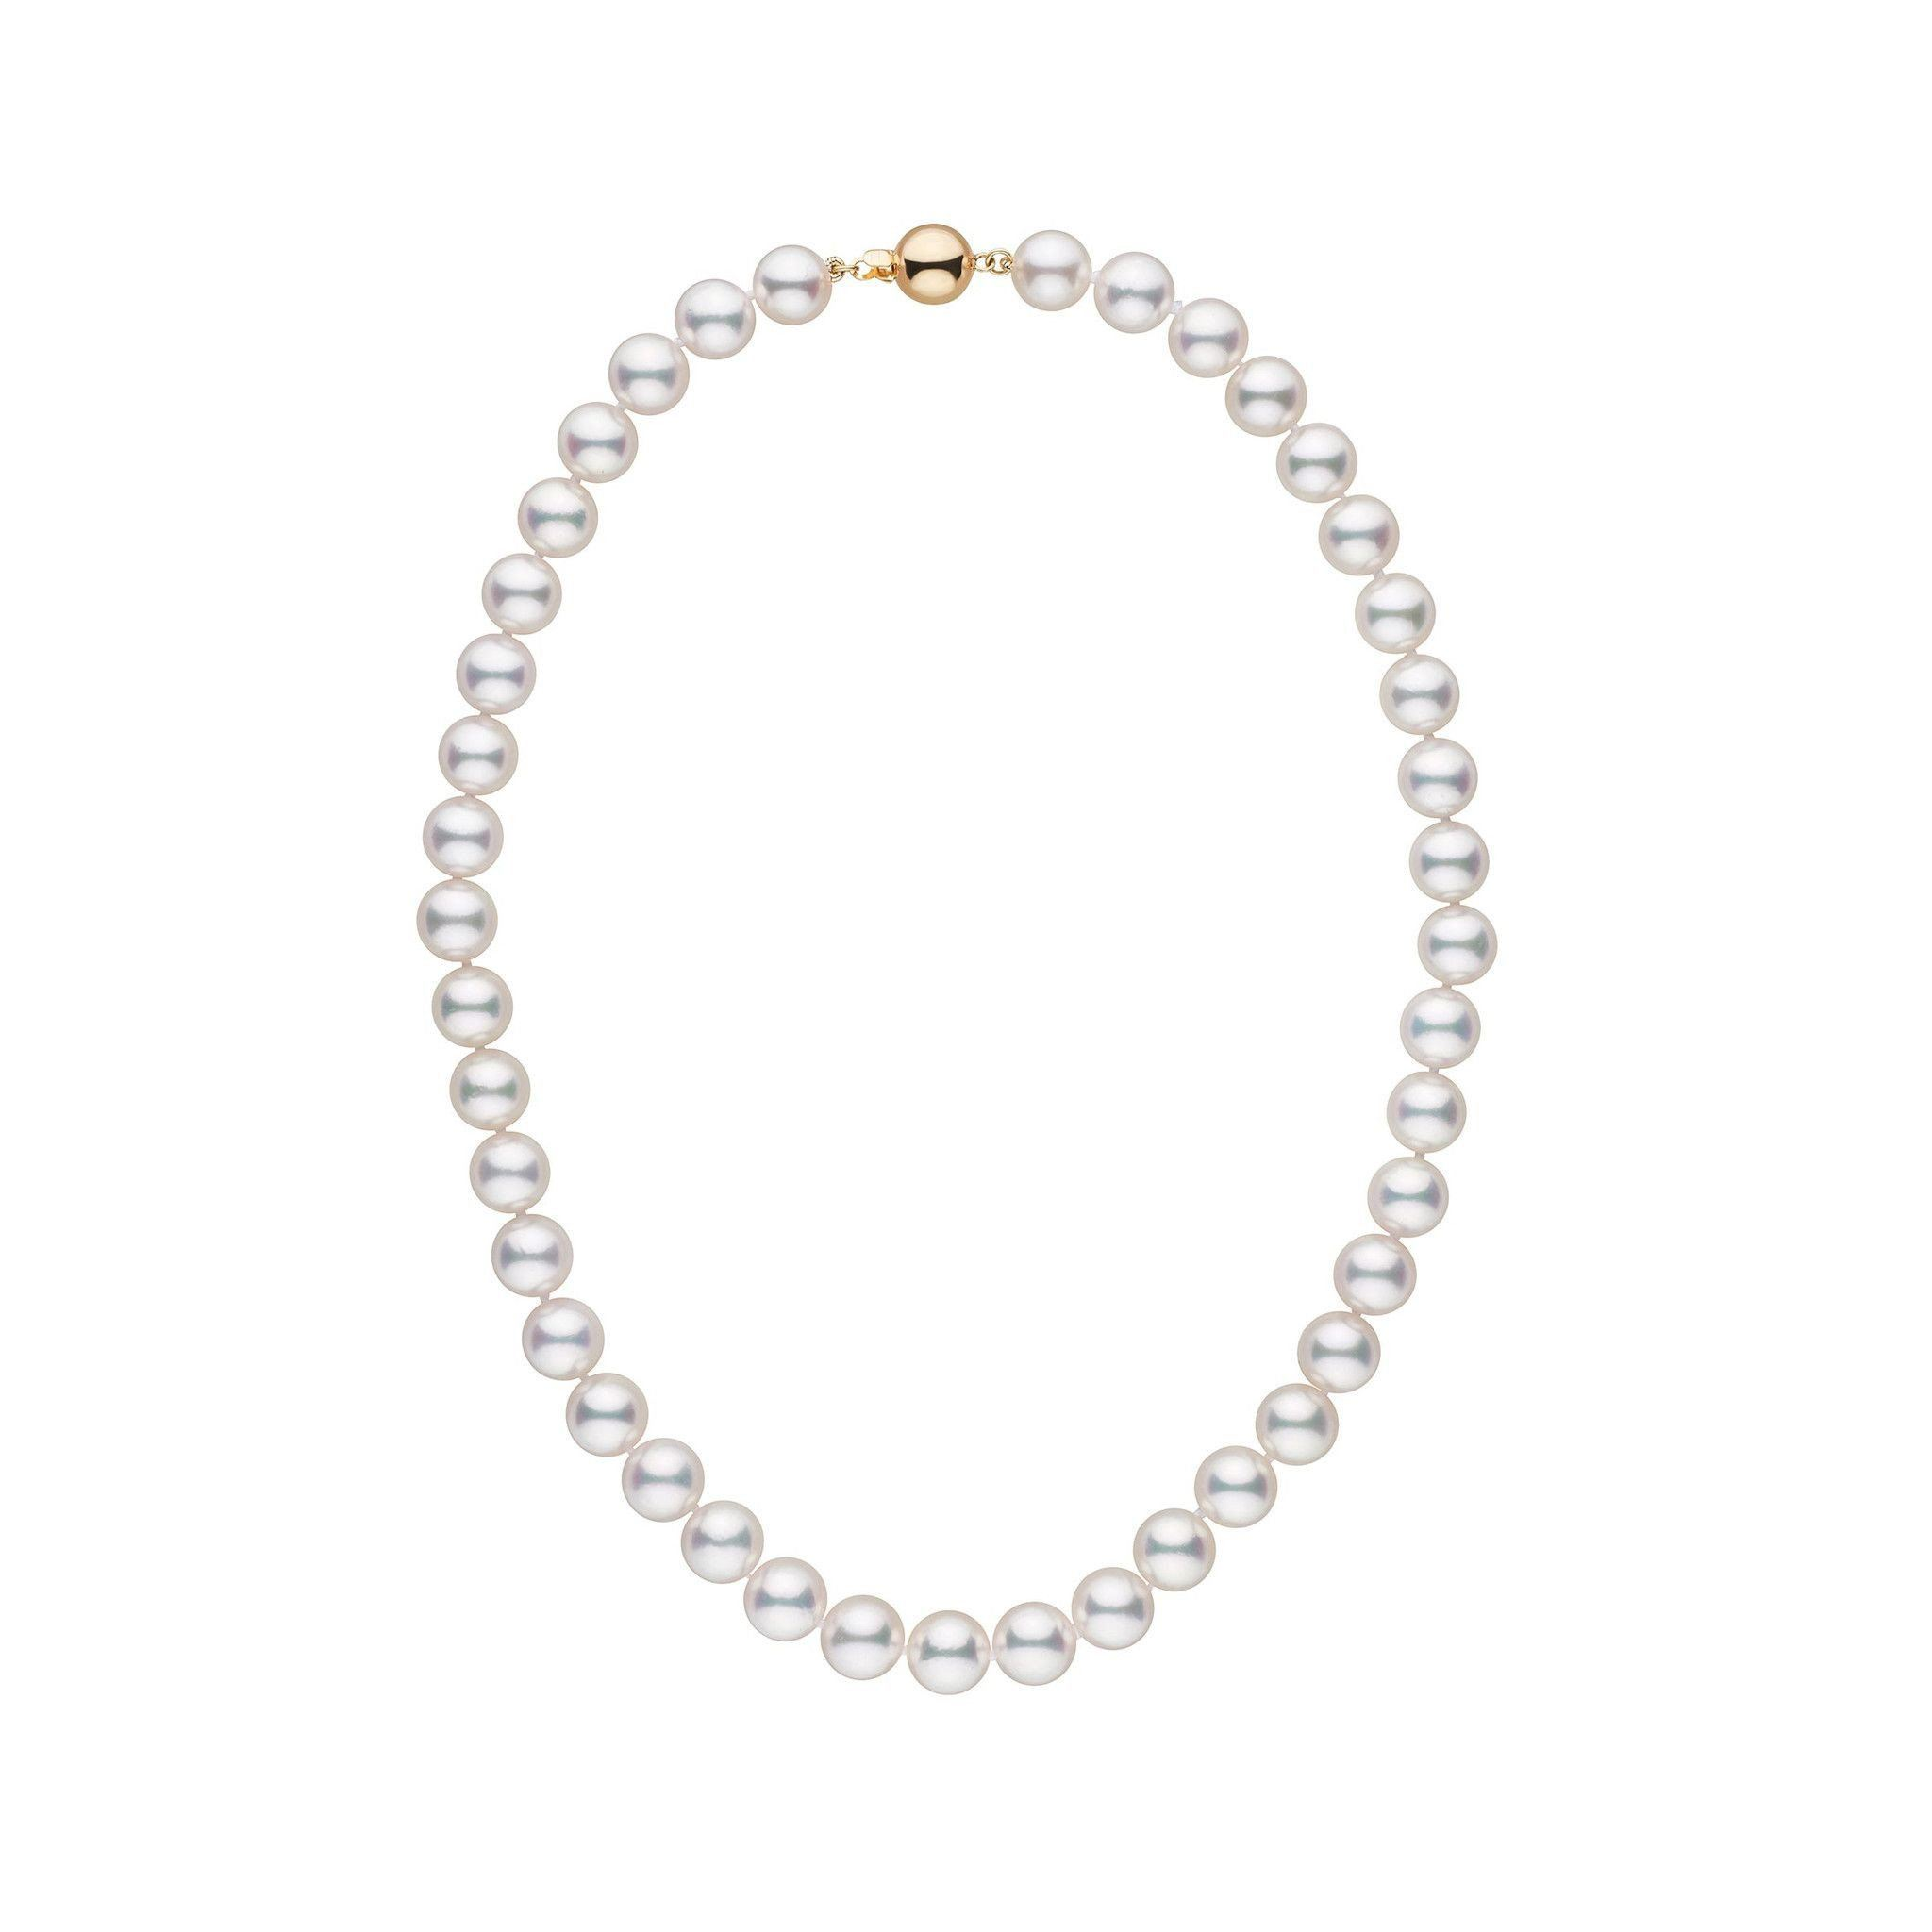 9.0-9.5 mm 16 Inch AAA White Akoya Pearl Necklace